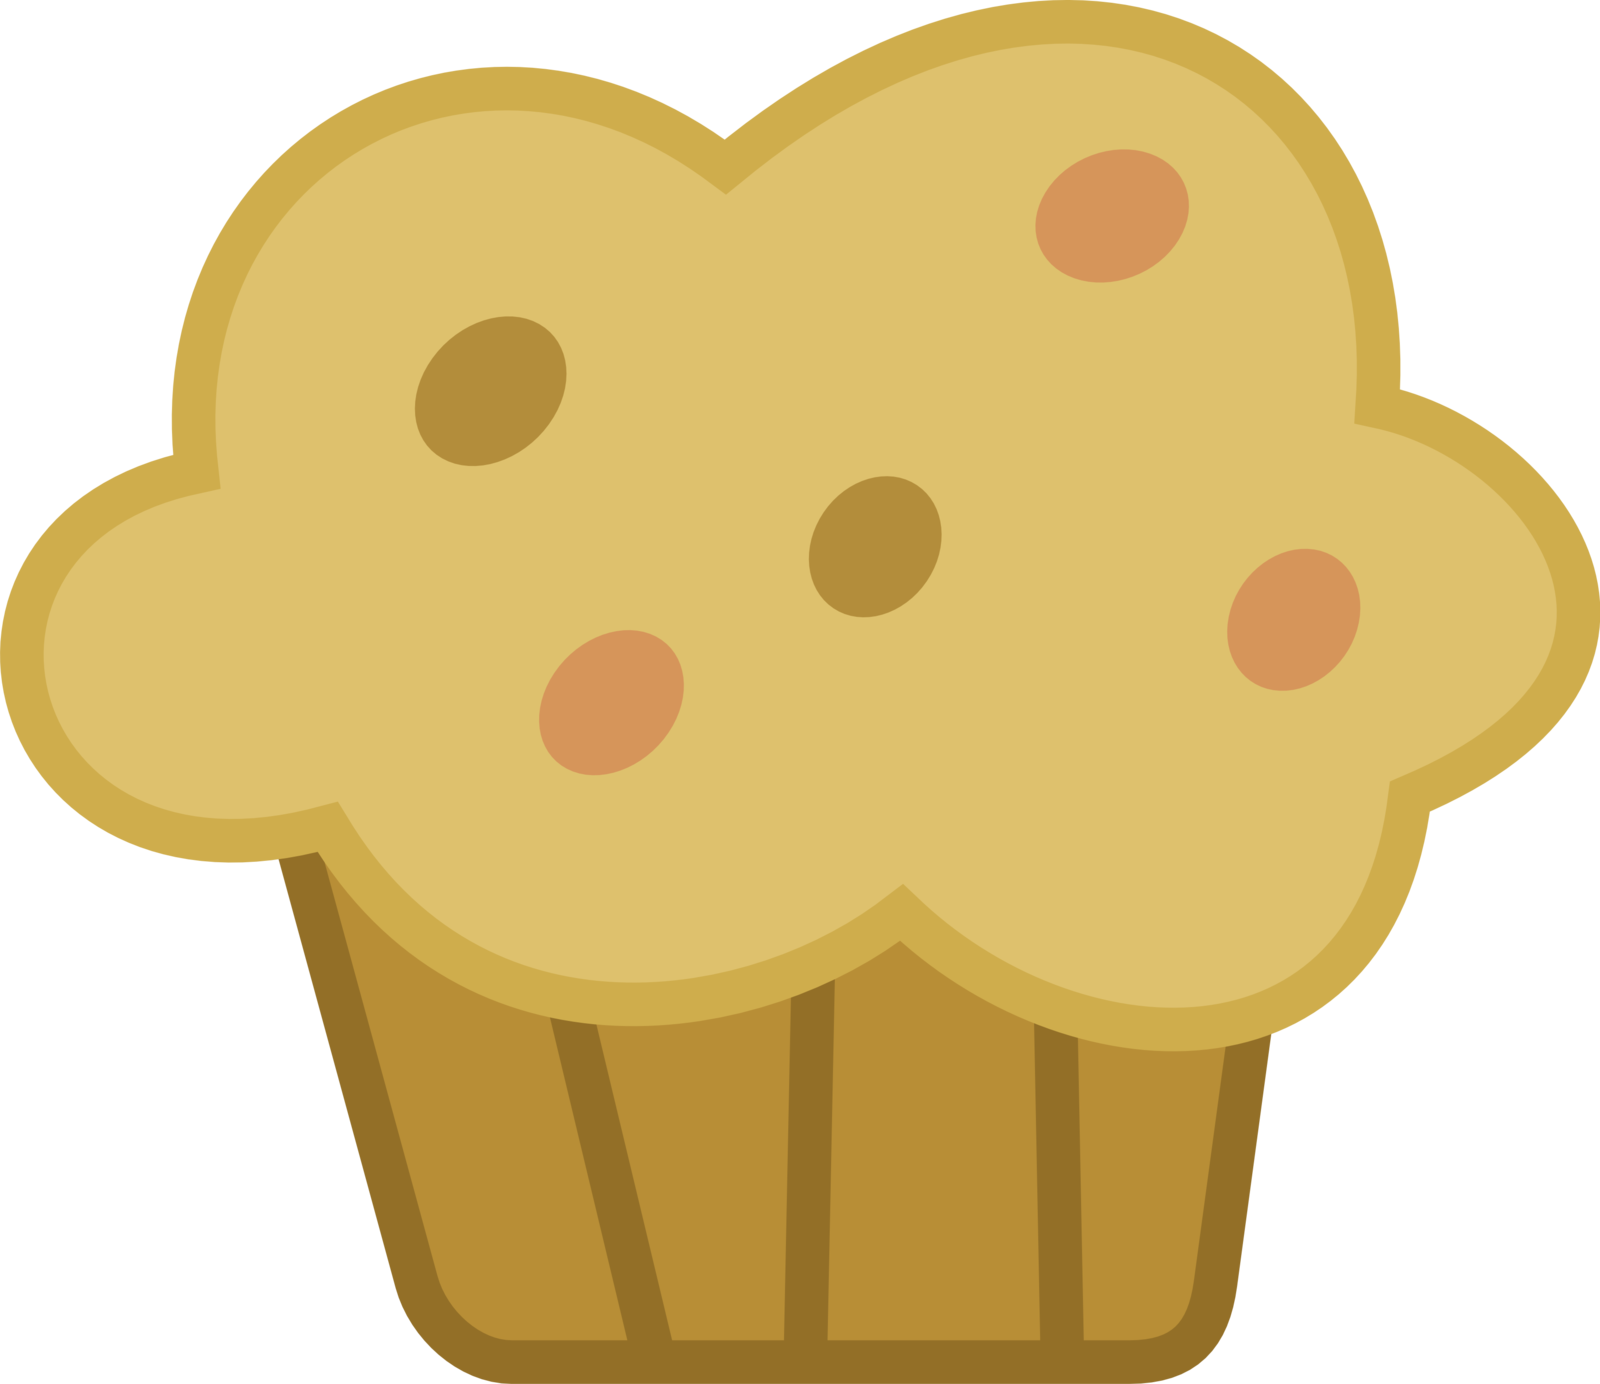 collection of muffin. Muffins clipart cute